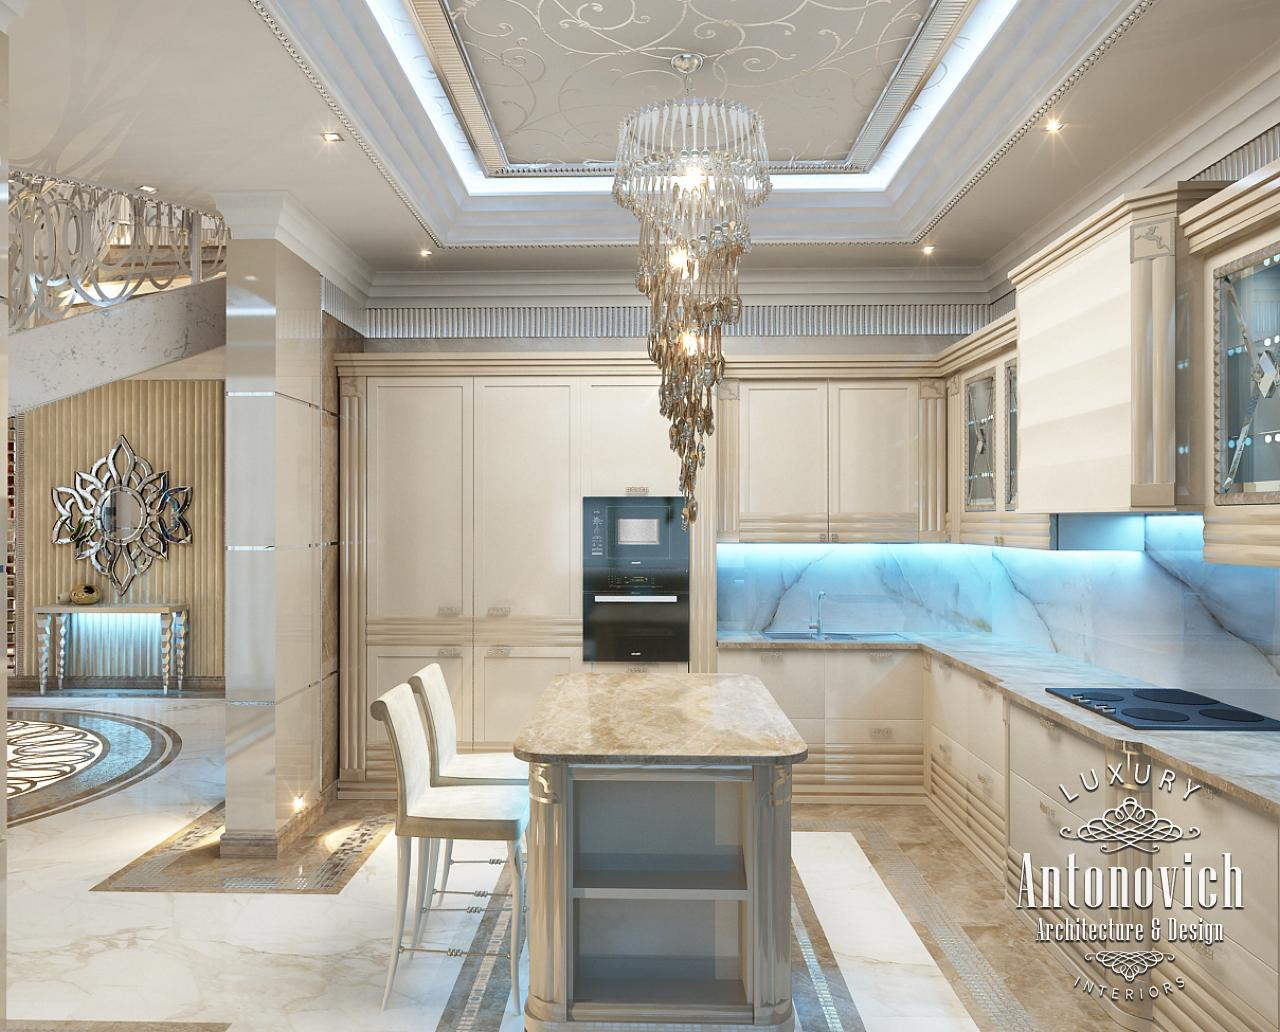 Luxury antonovich design uae luxury interior design dubai for Architecture and interior design